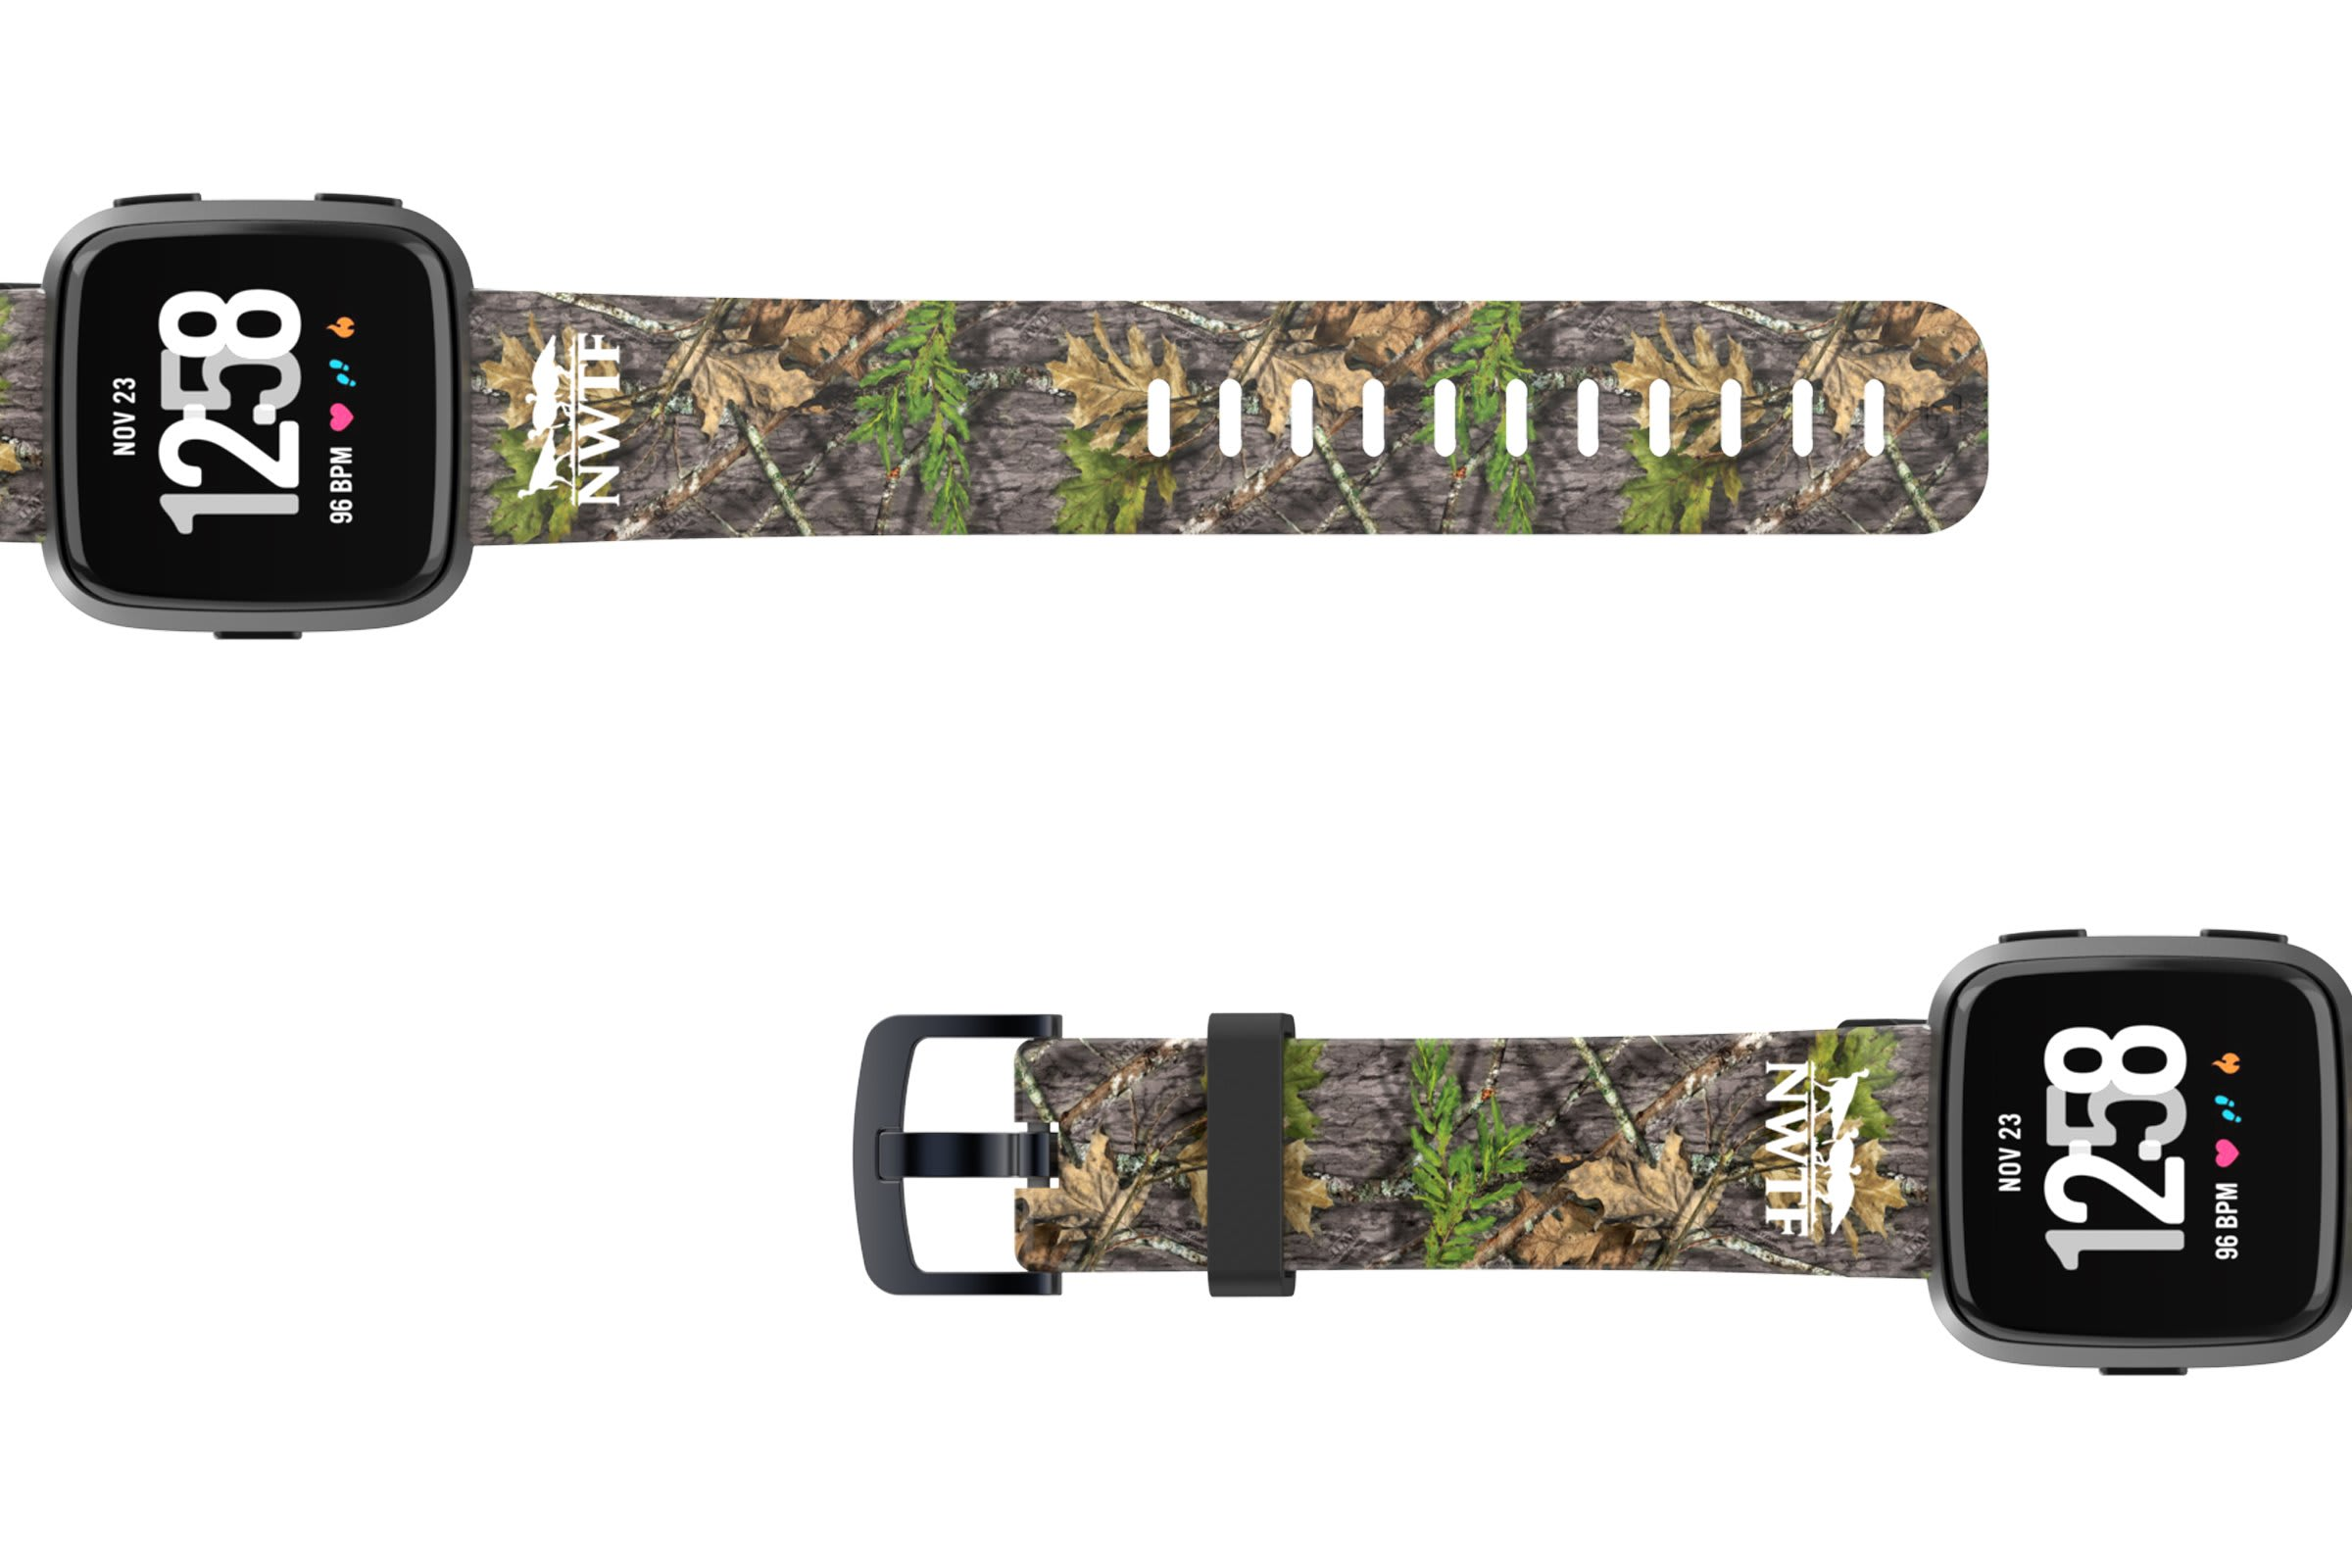 NWTF Mossy Oak Obsession Fitbit Versa watch band viewed top down